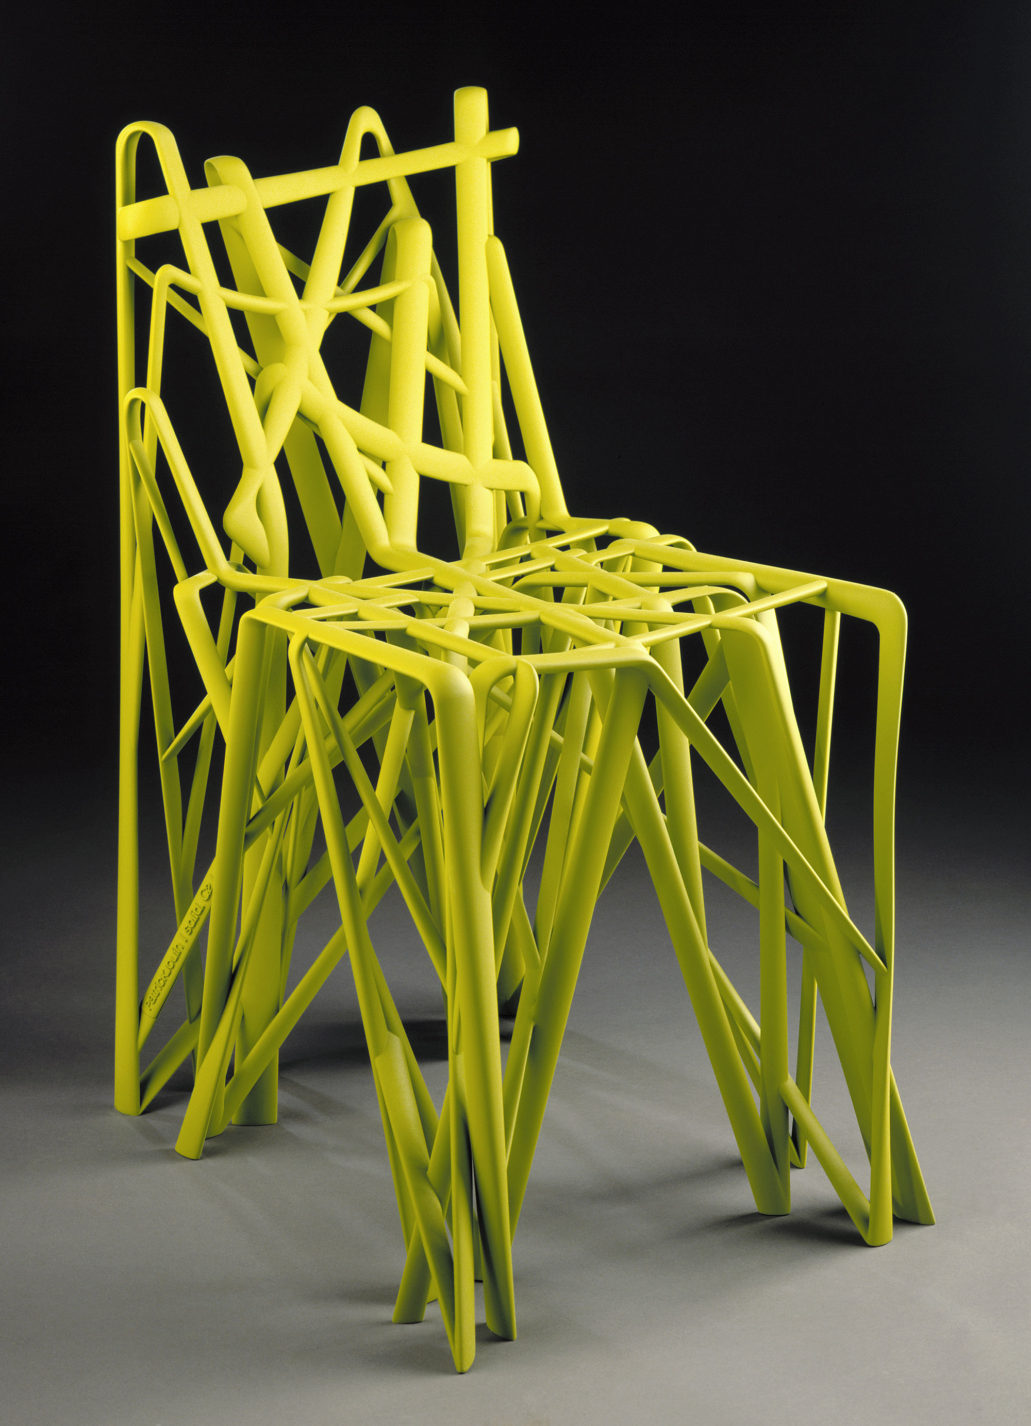 Bright yellow 3D-printed chair that appears to be made from a scribbled drawing.